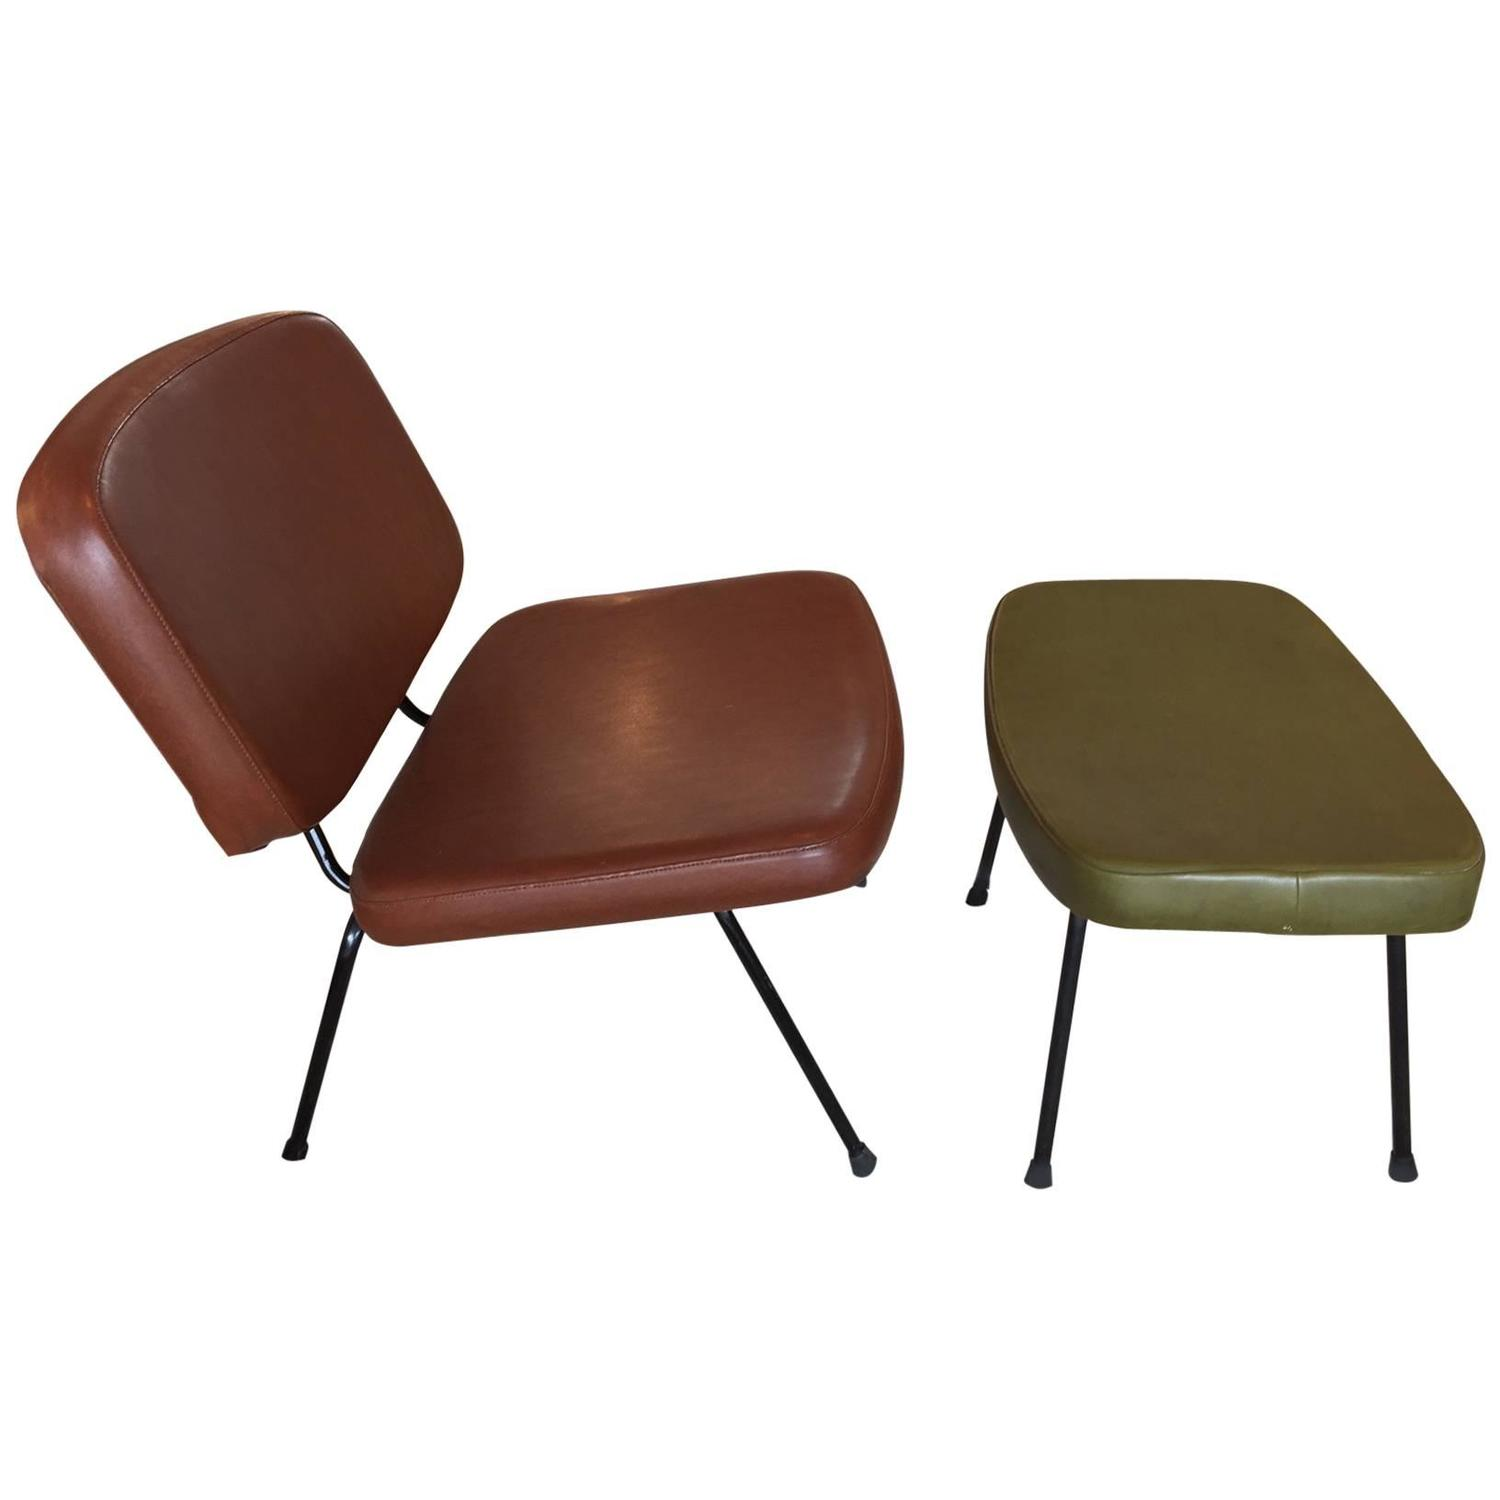 paulin cm190 low chair and ottoman at 1stdibs